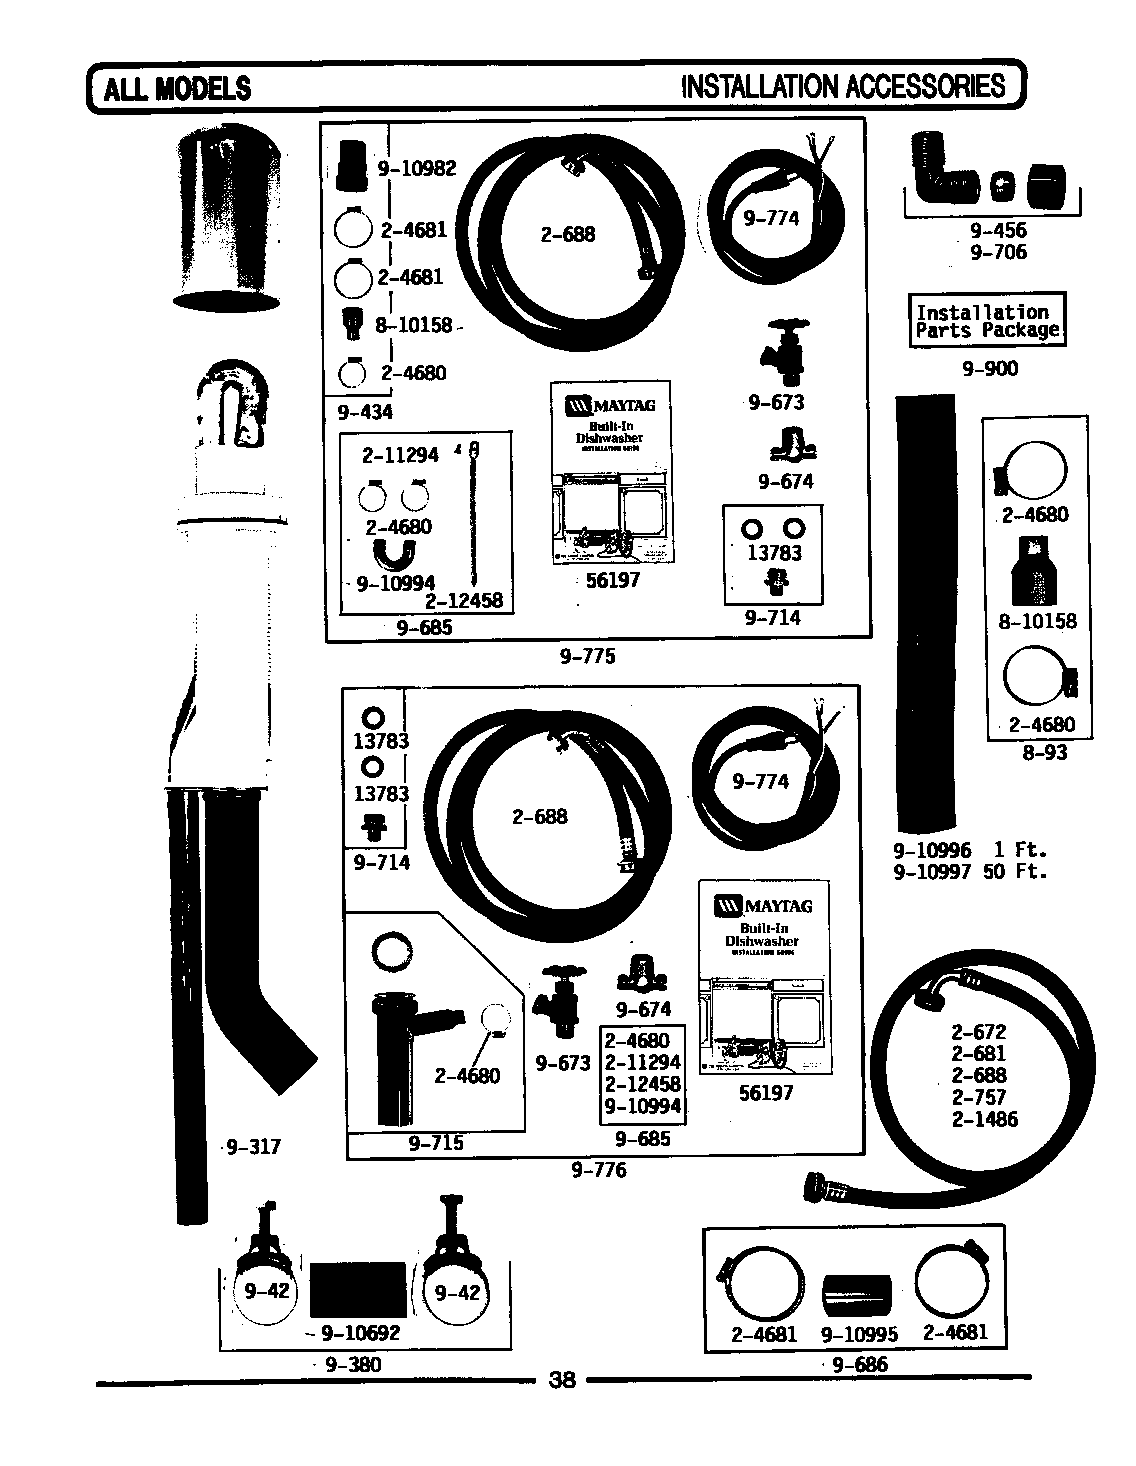 INSTALLATION ACCESSORIES Diagram & Parts List for Model